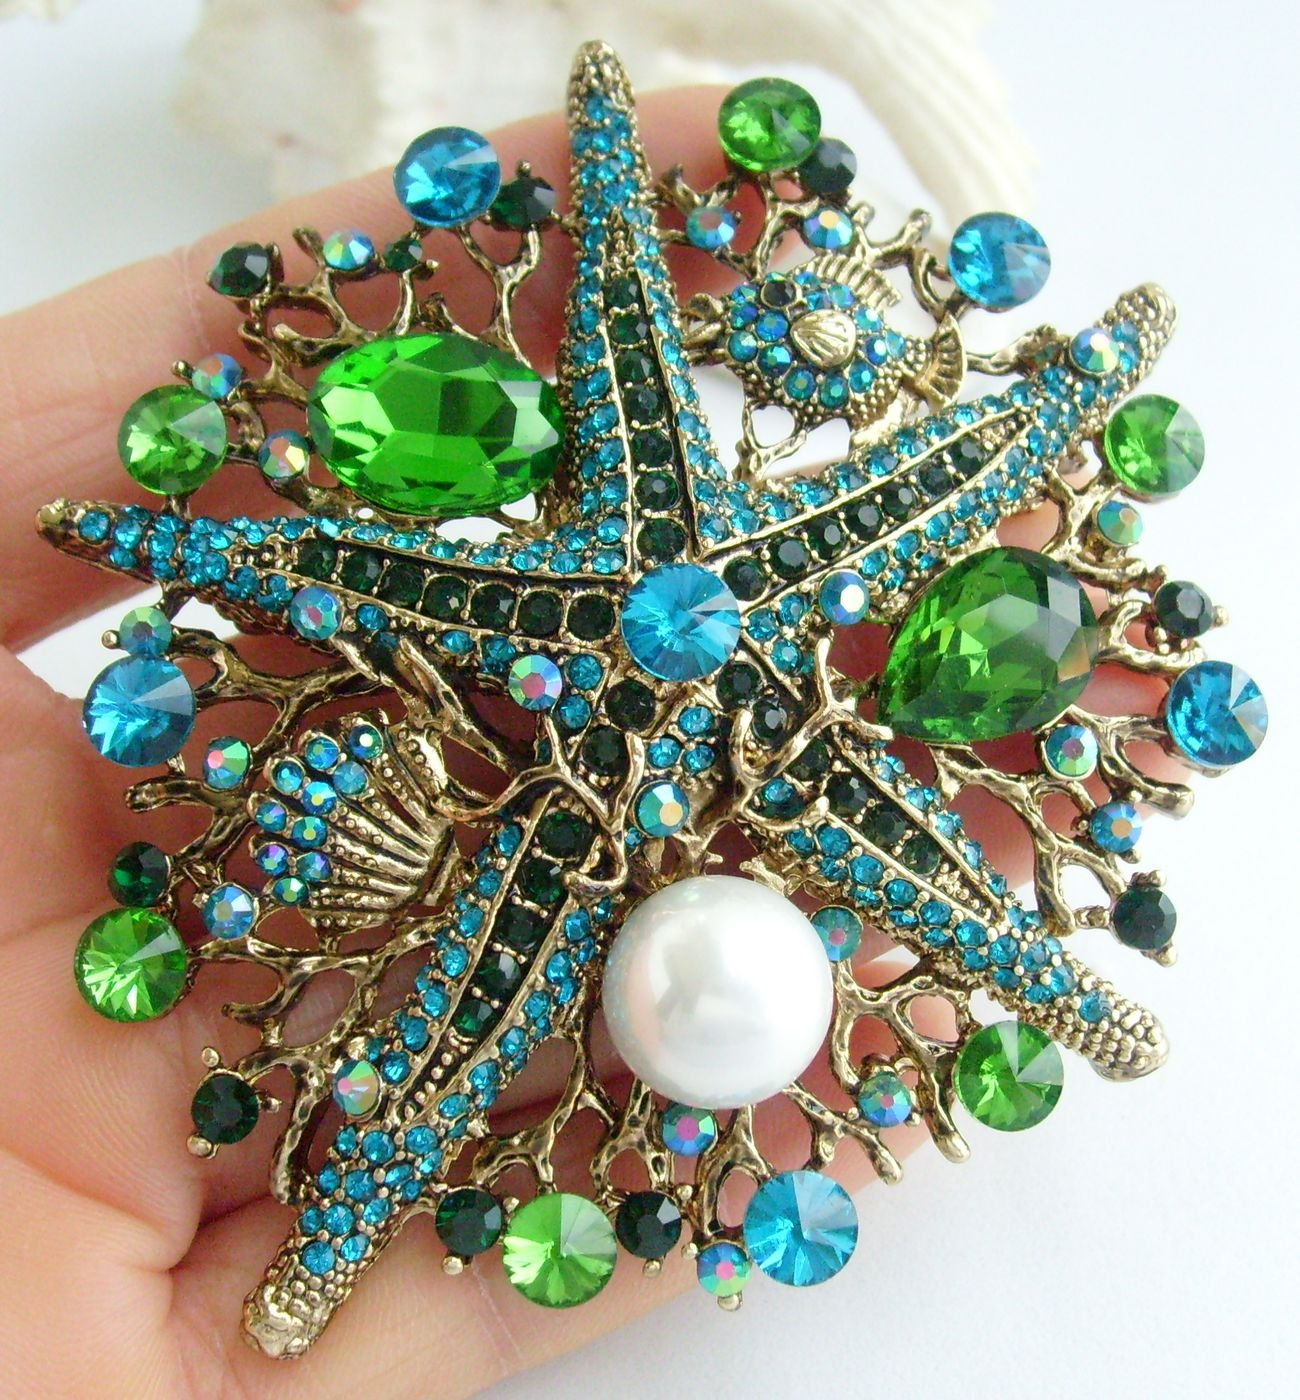 Sindary 3.15'' Starfish Brooch Pin Austrian Crystal Pendant BZ6412 (Gold-Tone Green) by Sindary Jewelry (Image #2)